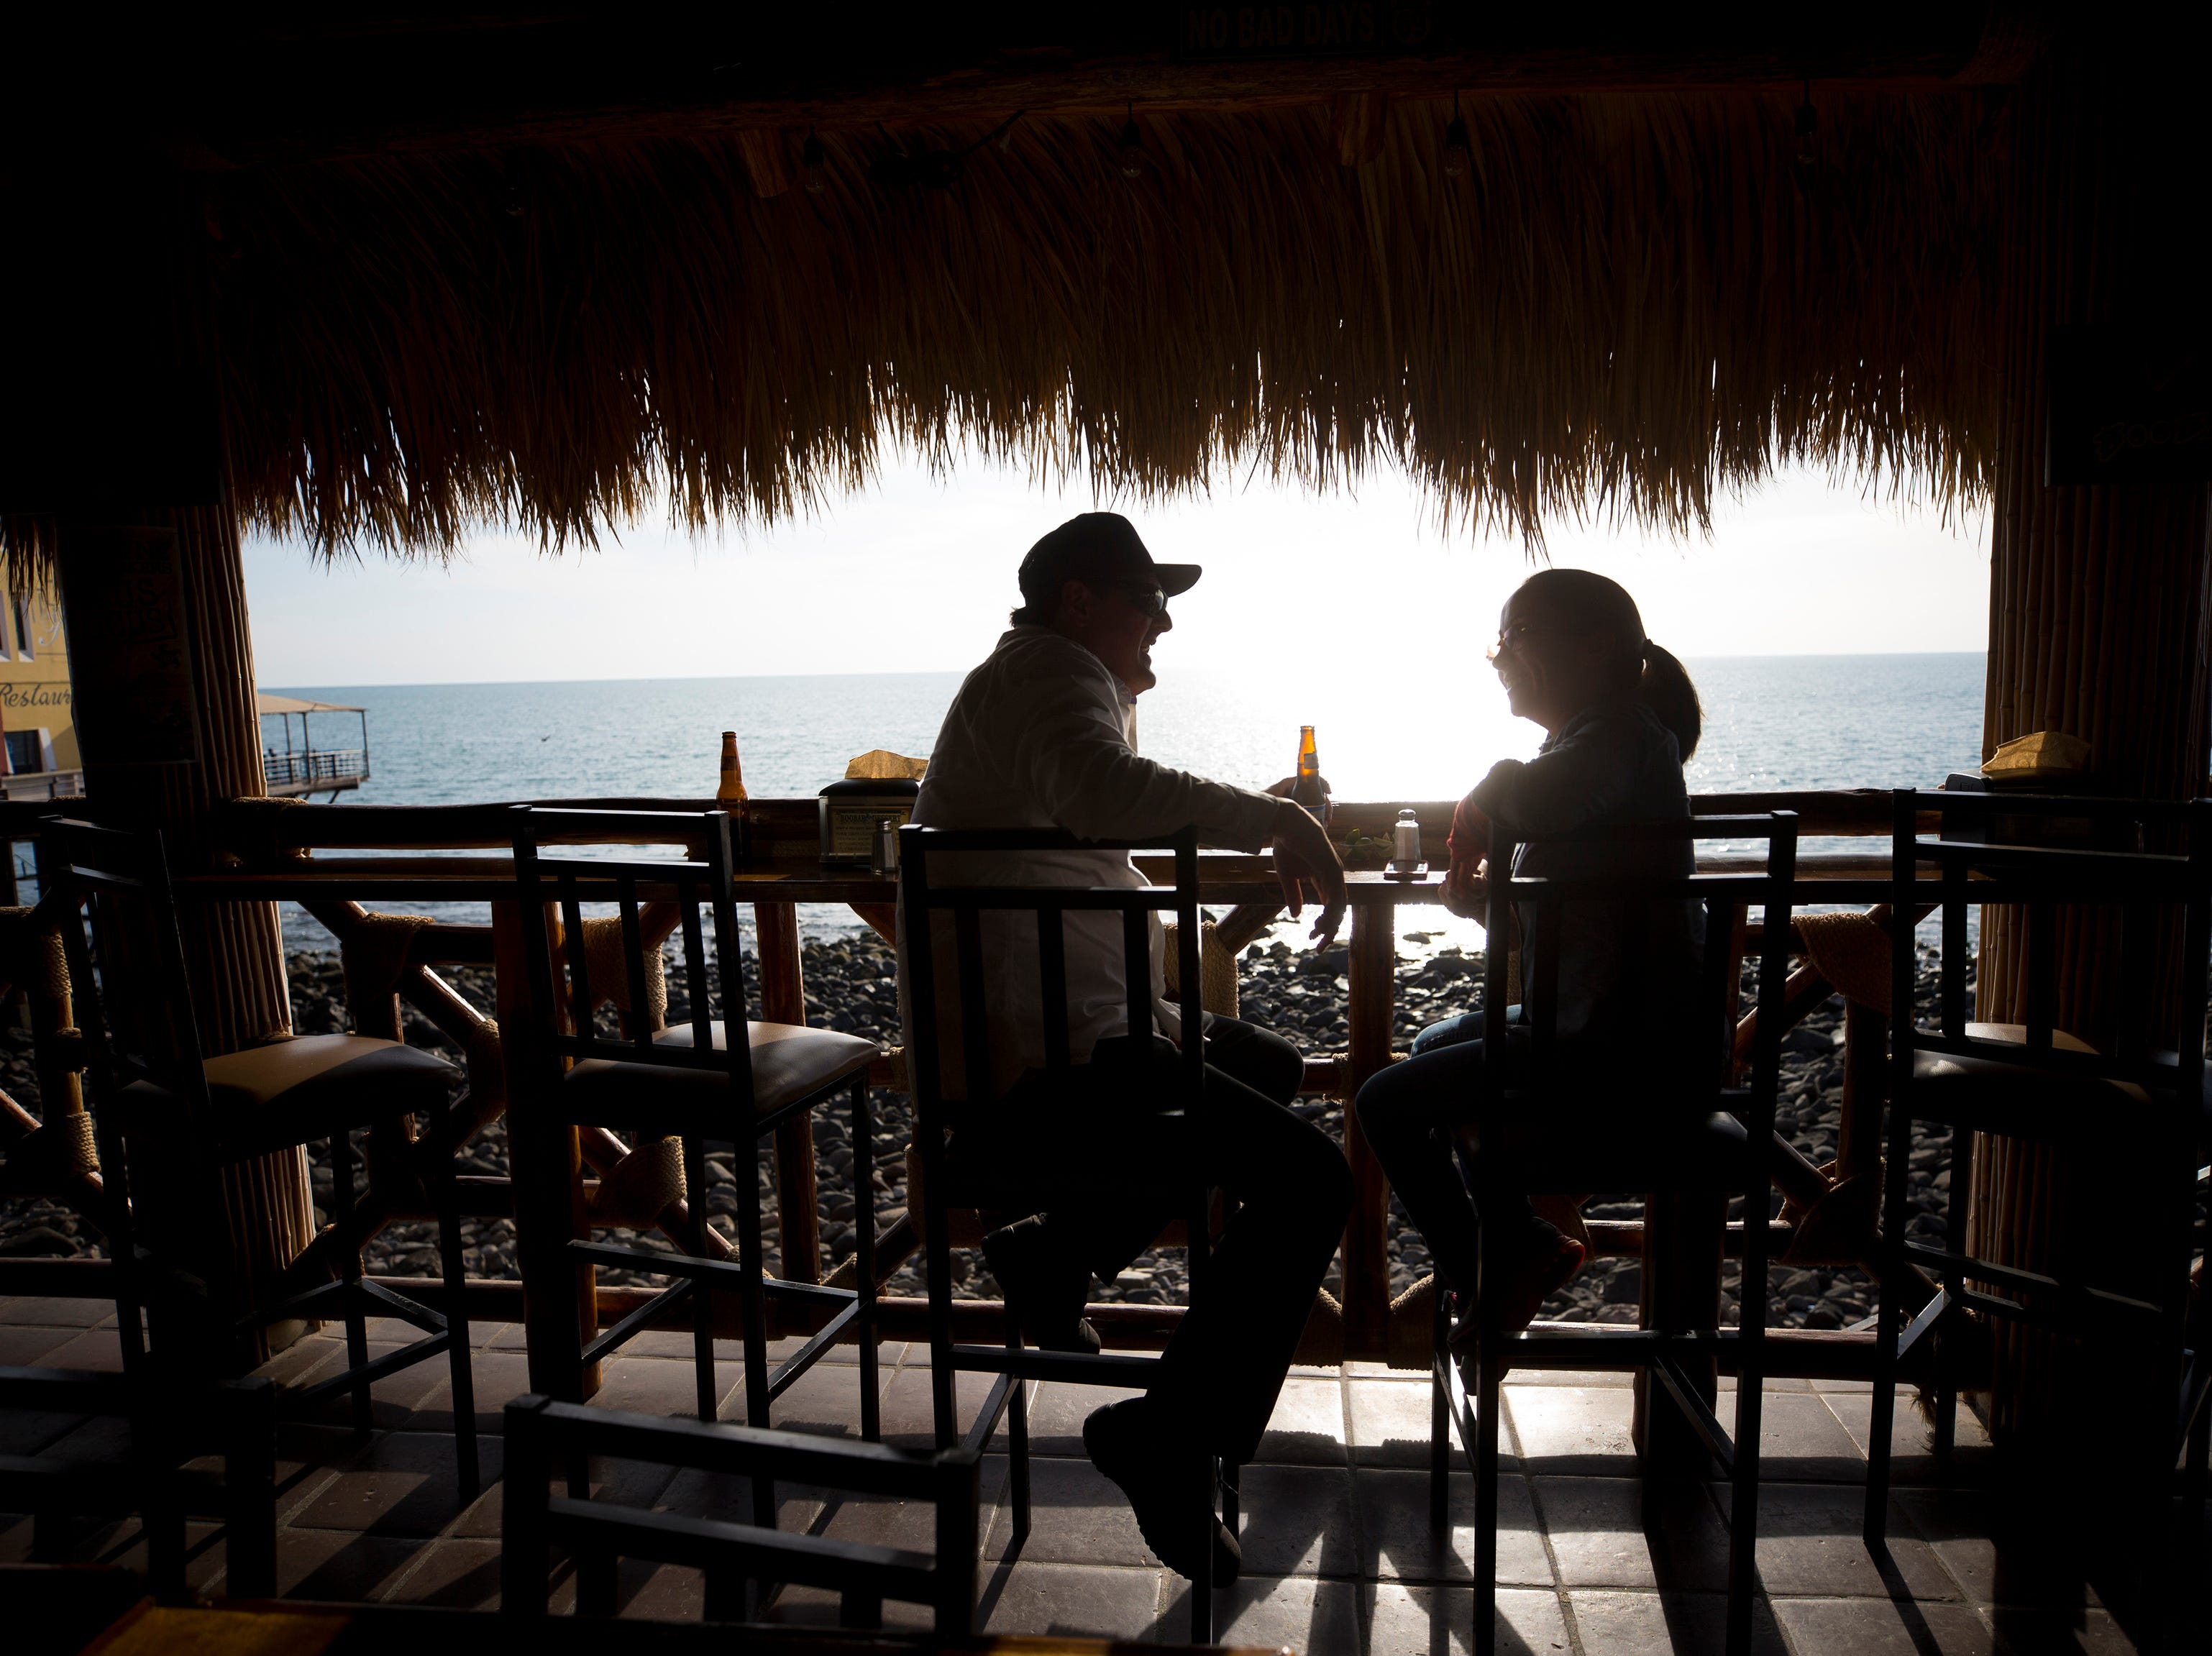 Orlando Cruz and Daniela Celaya of Tucson, enjoy a drink late afternoon at BooBar Cantina at the Malecon in Puerto Penasco, Mexico.